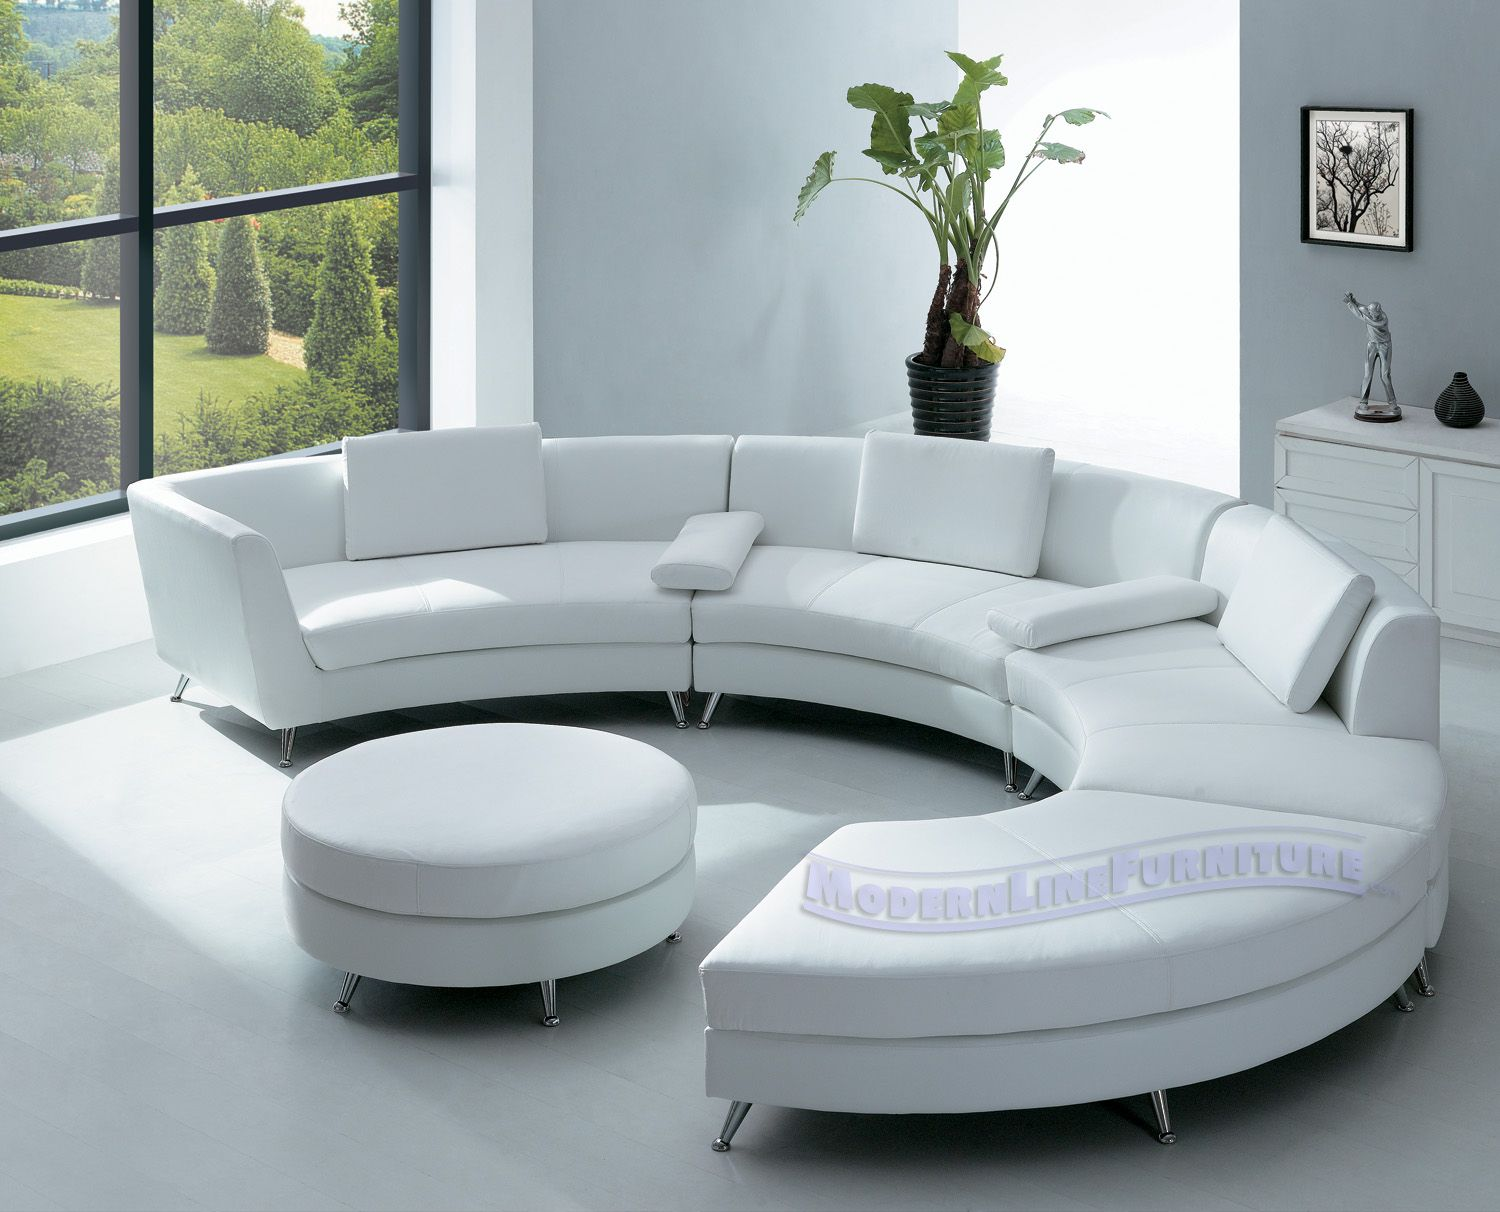 Room furniture with elegant half circle sofa home interior designs white living roomsmodern